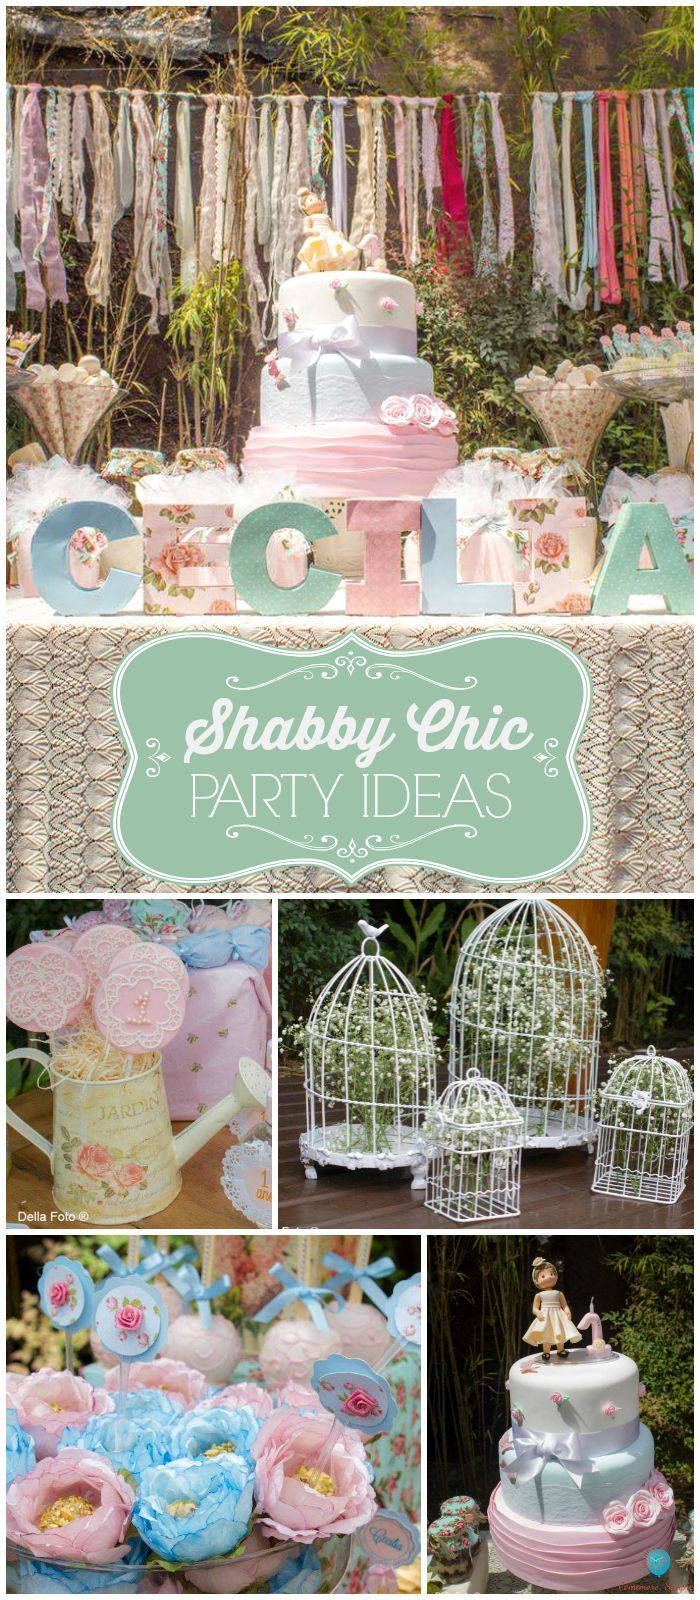 1000 Ideas About Shabby Chic Cakes On Pinterest Vintage Cakes Shabby Chic Cupcakes And